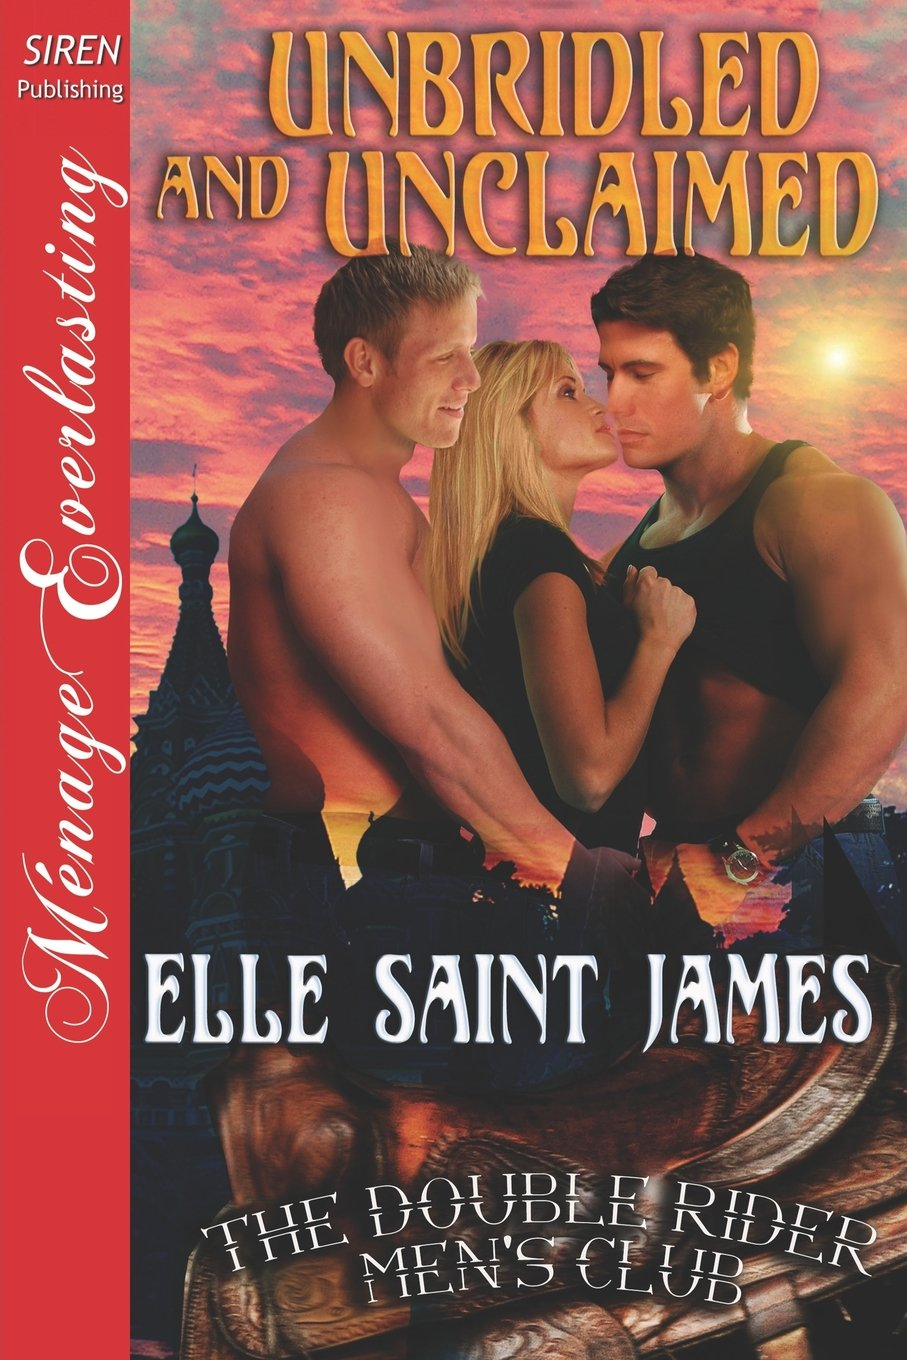 Download Unbridled and Unclaimed [The Double Rider Men's Club 6] (Siren Publishing Menage Everlasting) PDF